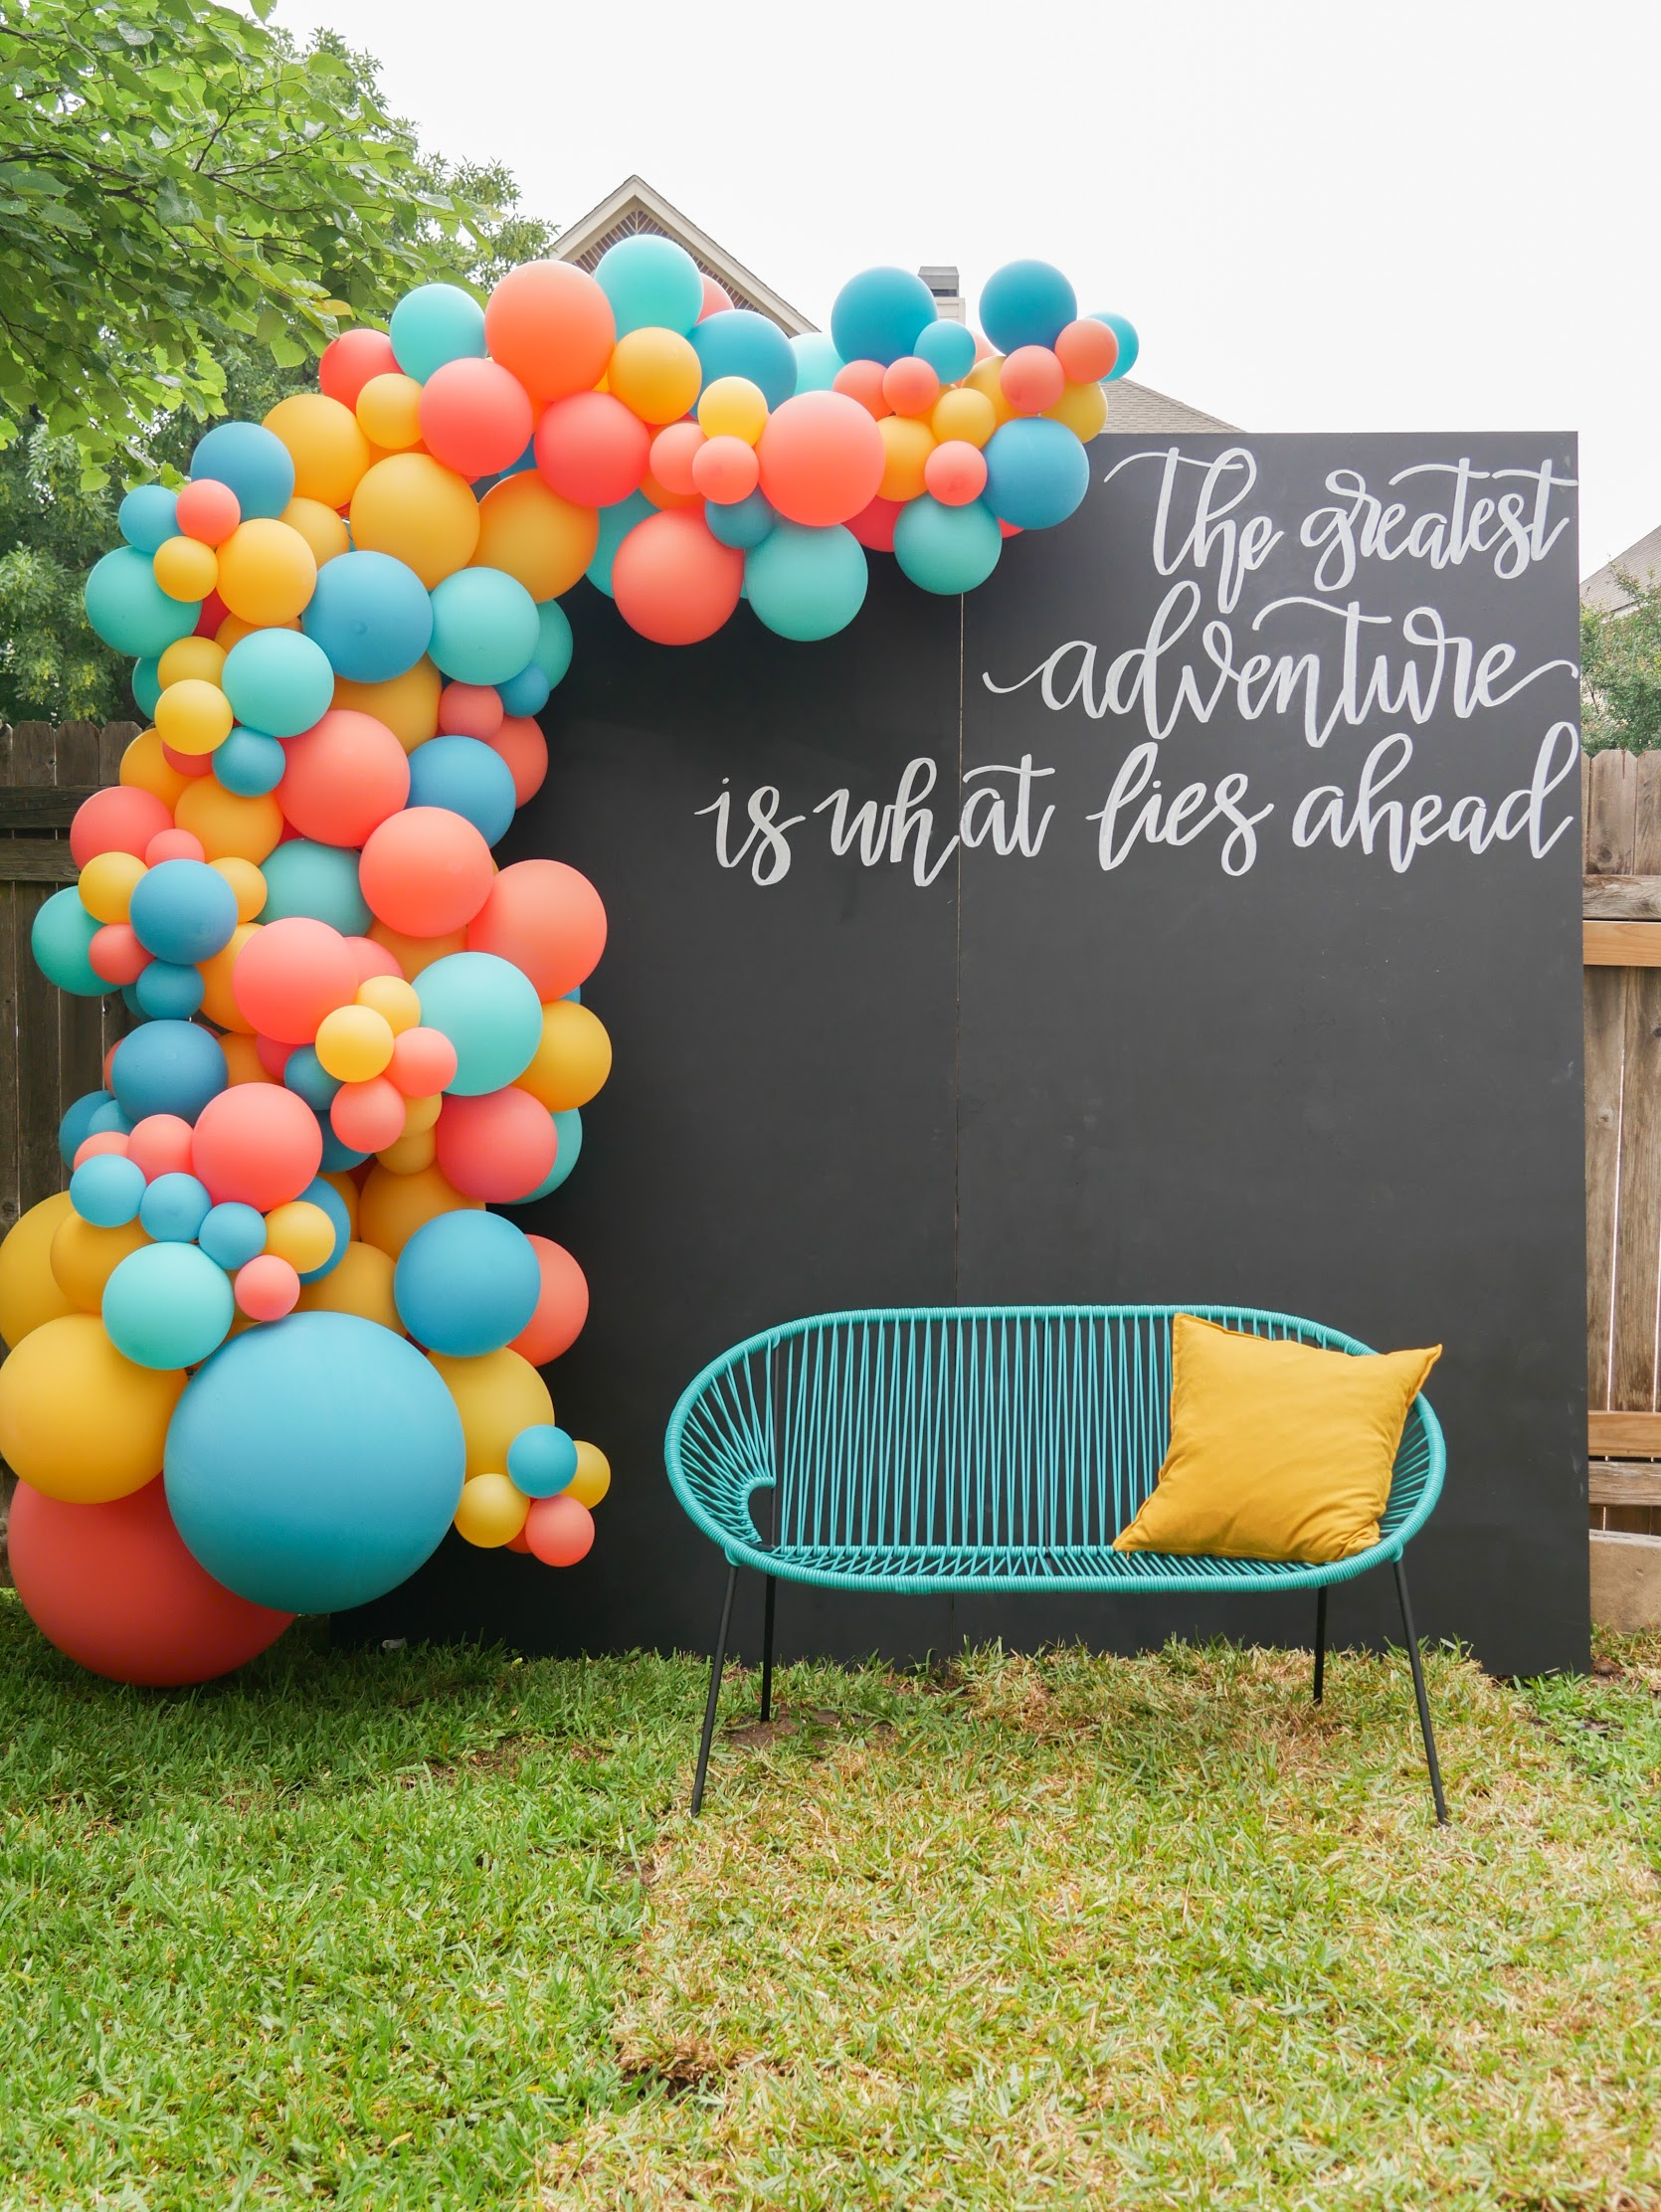 Graduation party photo booth ideas - create an oversized balloon garland with a DIY chalkboard backdrop that features a hand-lettered quote. See more from this Grad Party on Mint Event Design www.minteventdesign.com #graduationparty #graduationpartyideas #graduation #gradparty #gradpartyideas #partyballoons #balloongarland #photobooth #photobackdrop